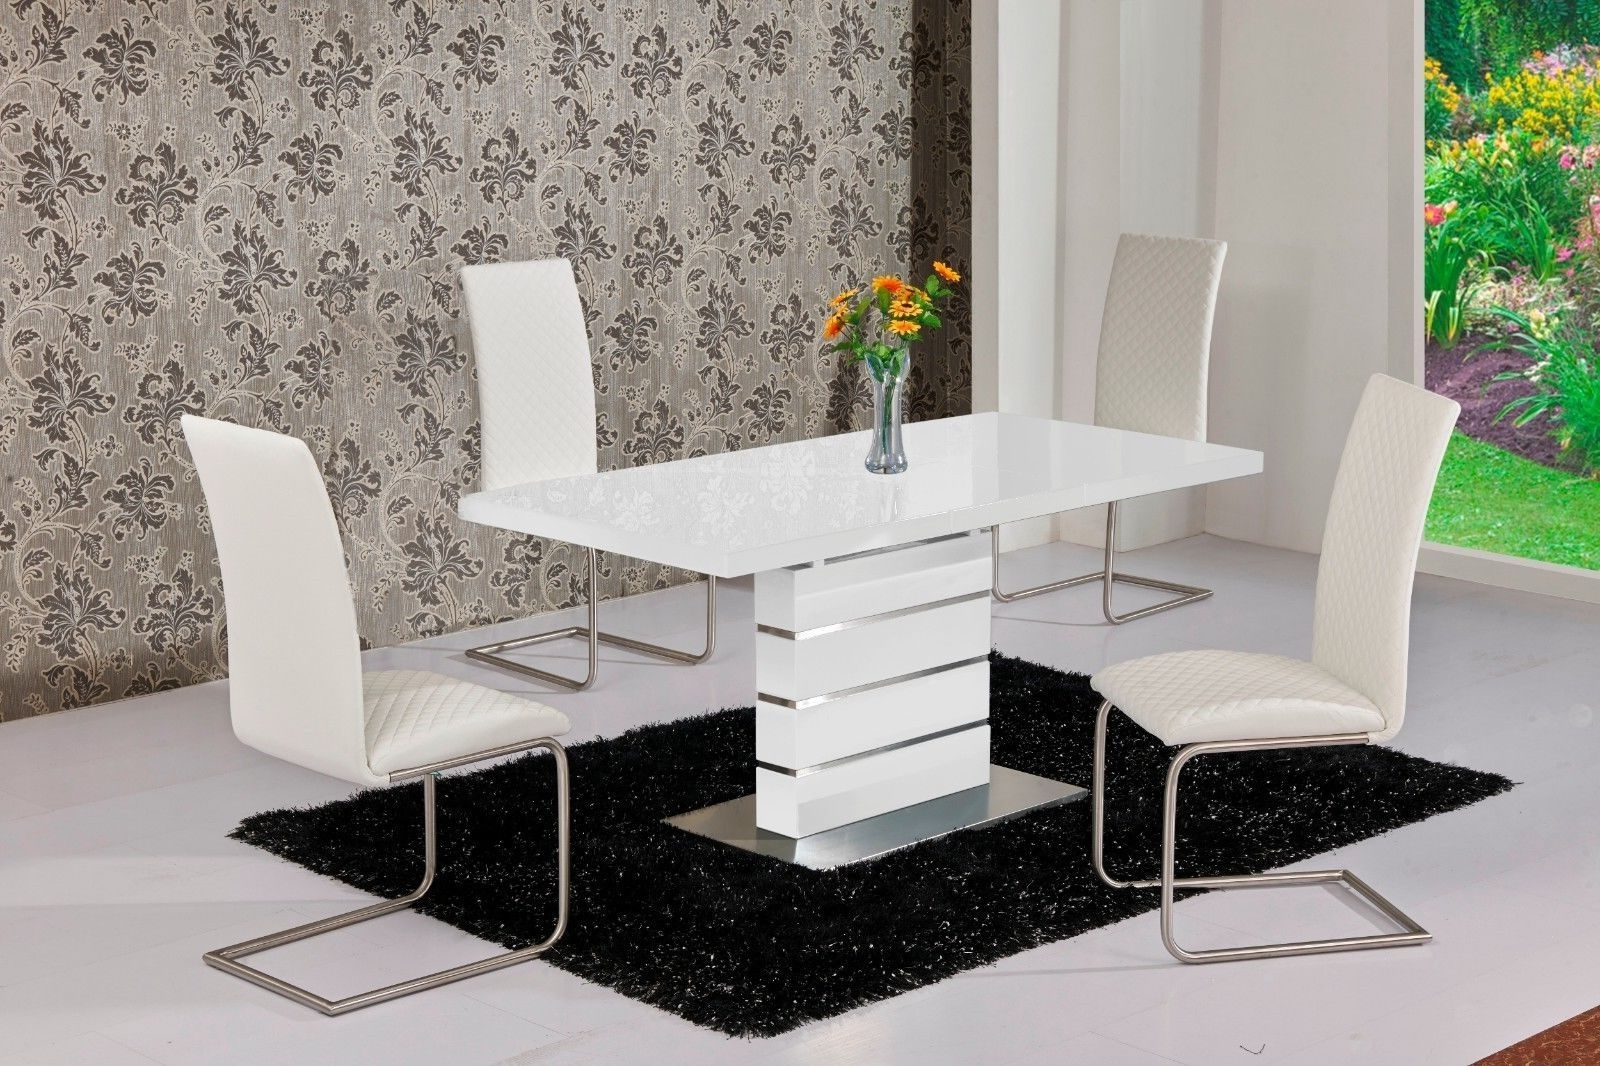 Mace High Gloss Extending 120 160 Dining Table & Chair Set – White For 2017 Extending Dining Tables And Chairs (View 12 of 25)